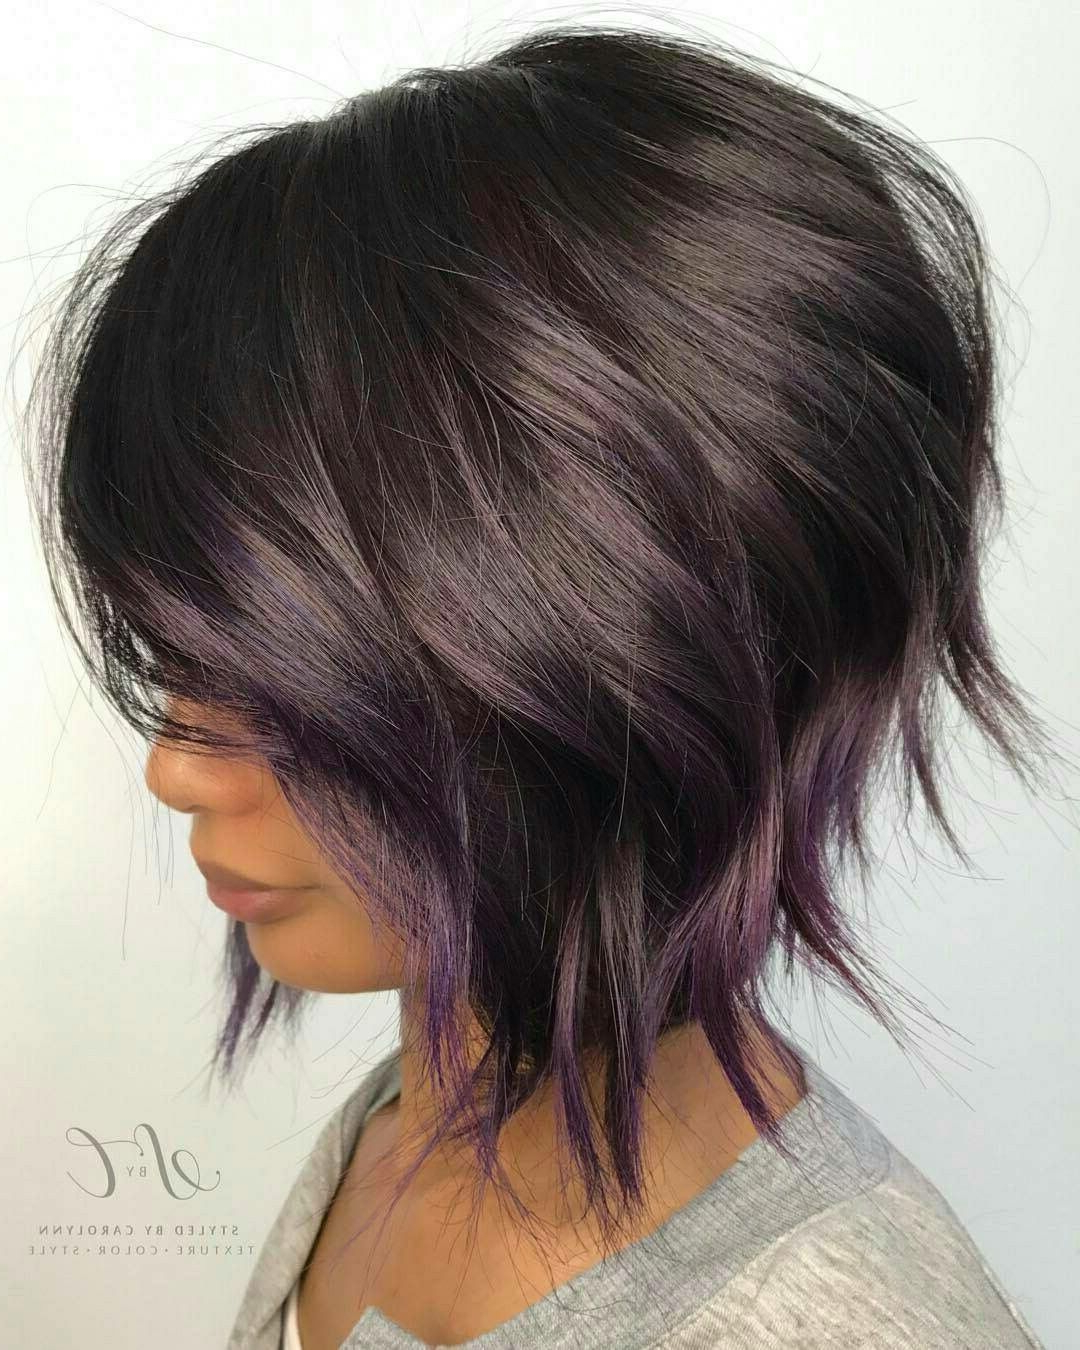 Want This Cut!! | Pixie, Bob, Bangs, Edgy | Pinterest | Hair Style For Sassy And Stacked Hairstyles (View 20 of 20)